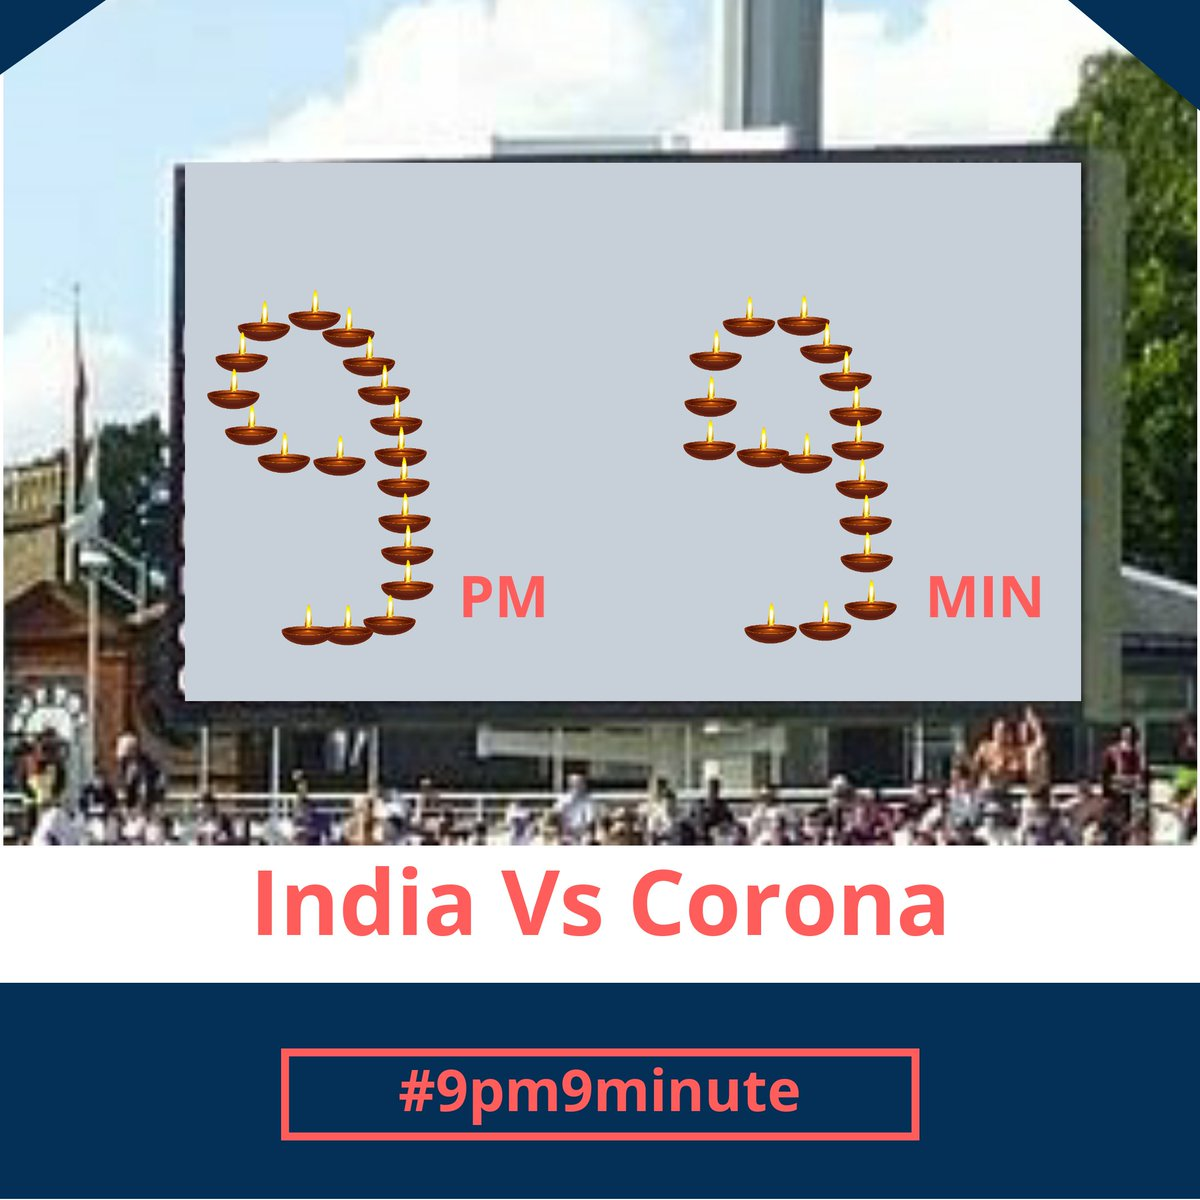 One '9 9' that will be loved more than any 'Centuries' ever made!  Let's join our PM  @narendramodi in this match against #Corona. #9baje9minute<br>http://pic.twitter.com/RS8cXHVBj4